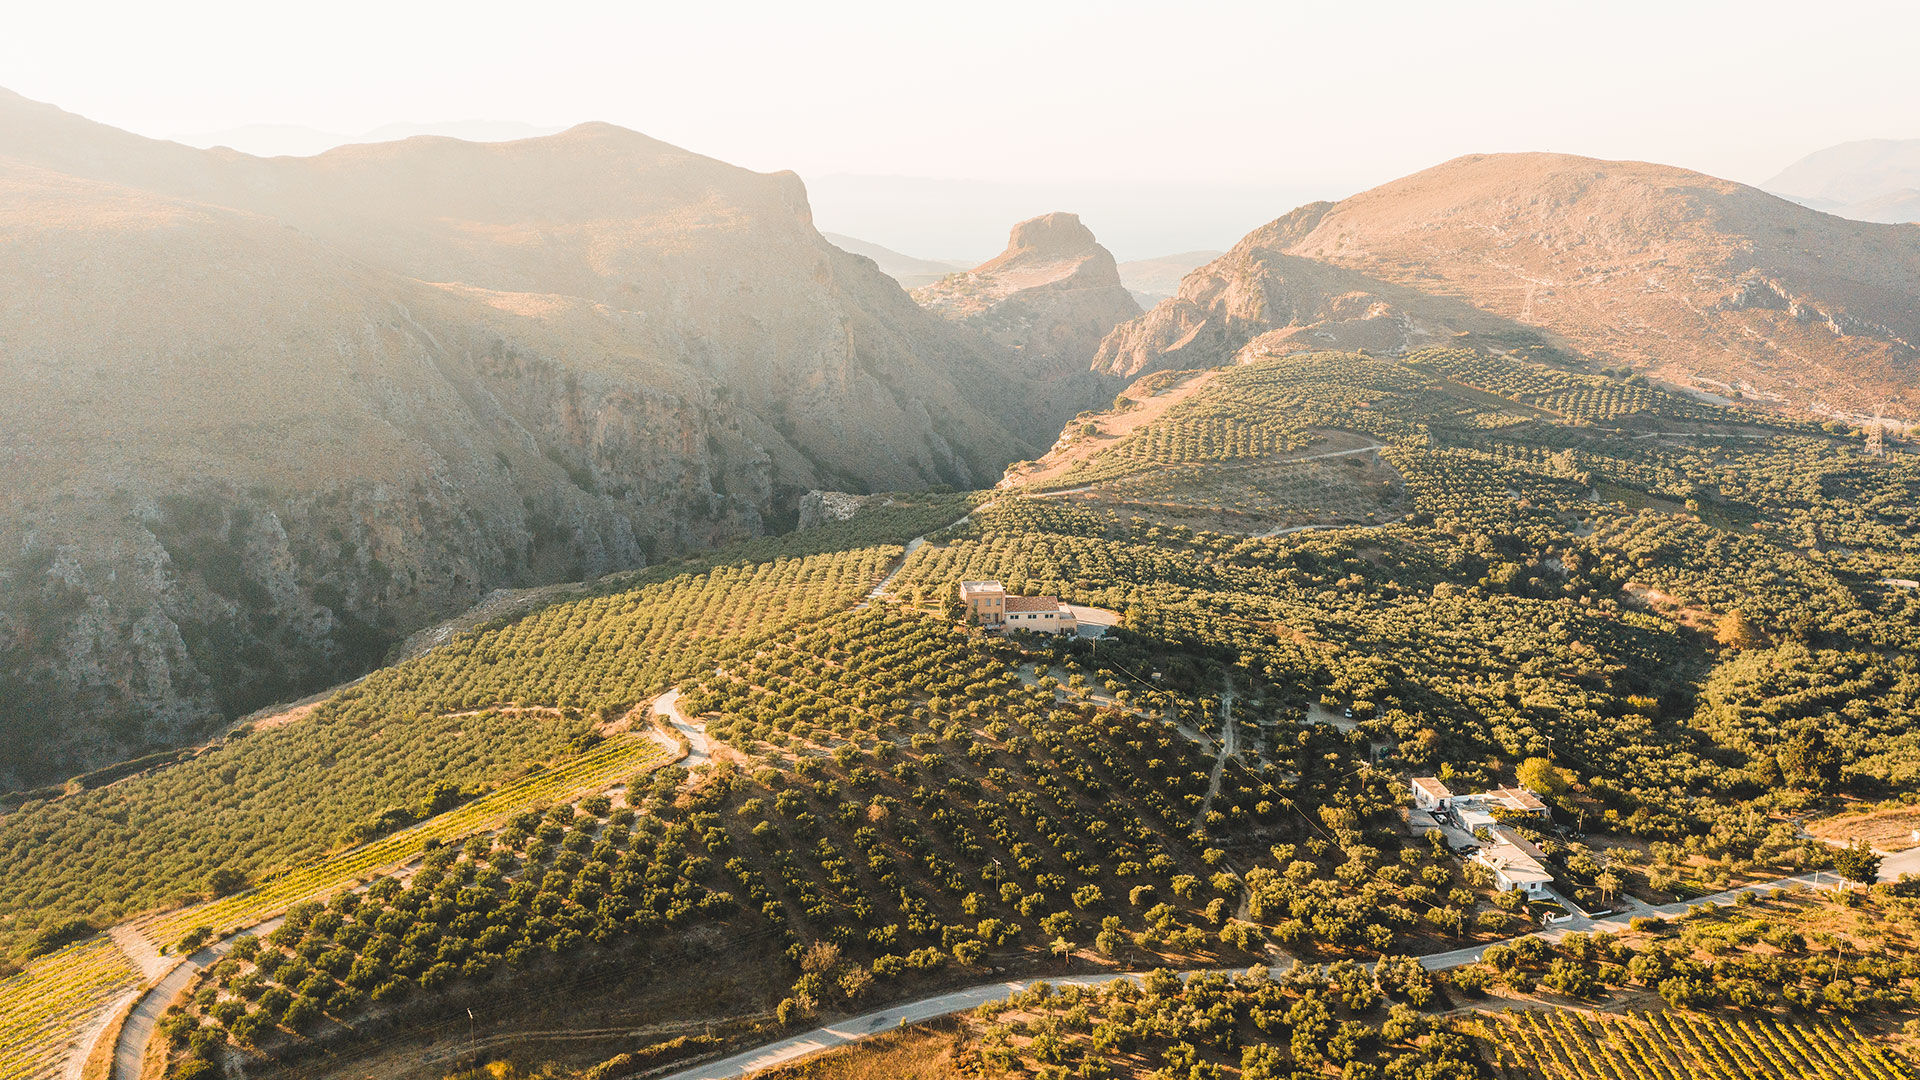 The sight of olive groves will accompany just about every journey outside Chania town